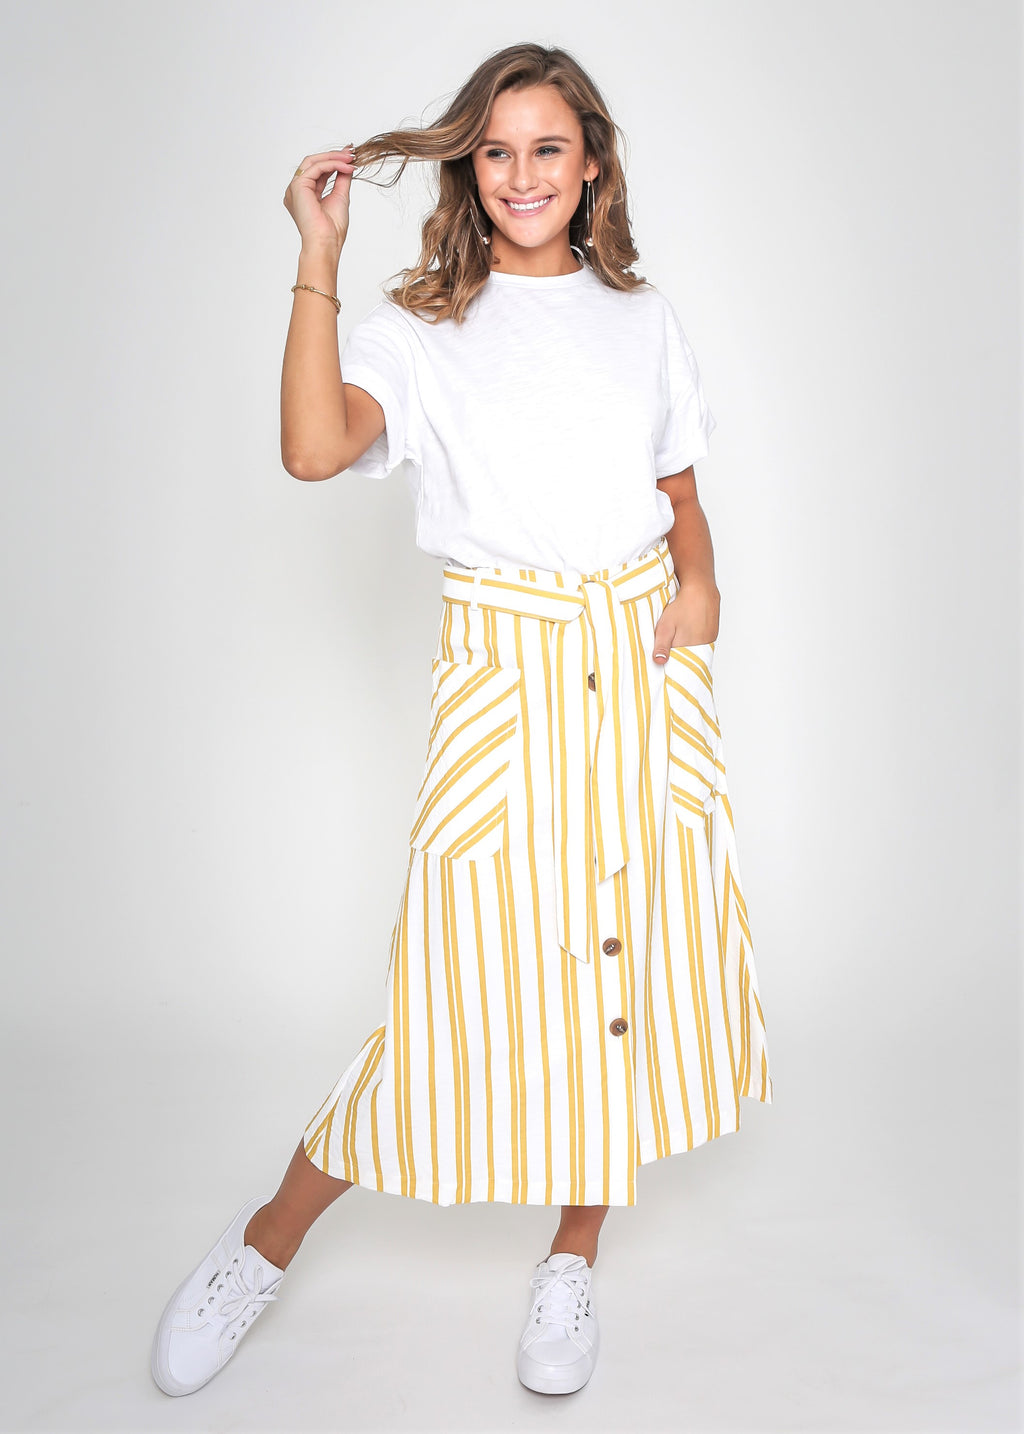 SASHA STRIPED SKIRT - YELLOW STRIPE